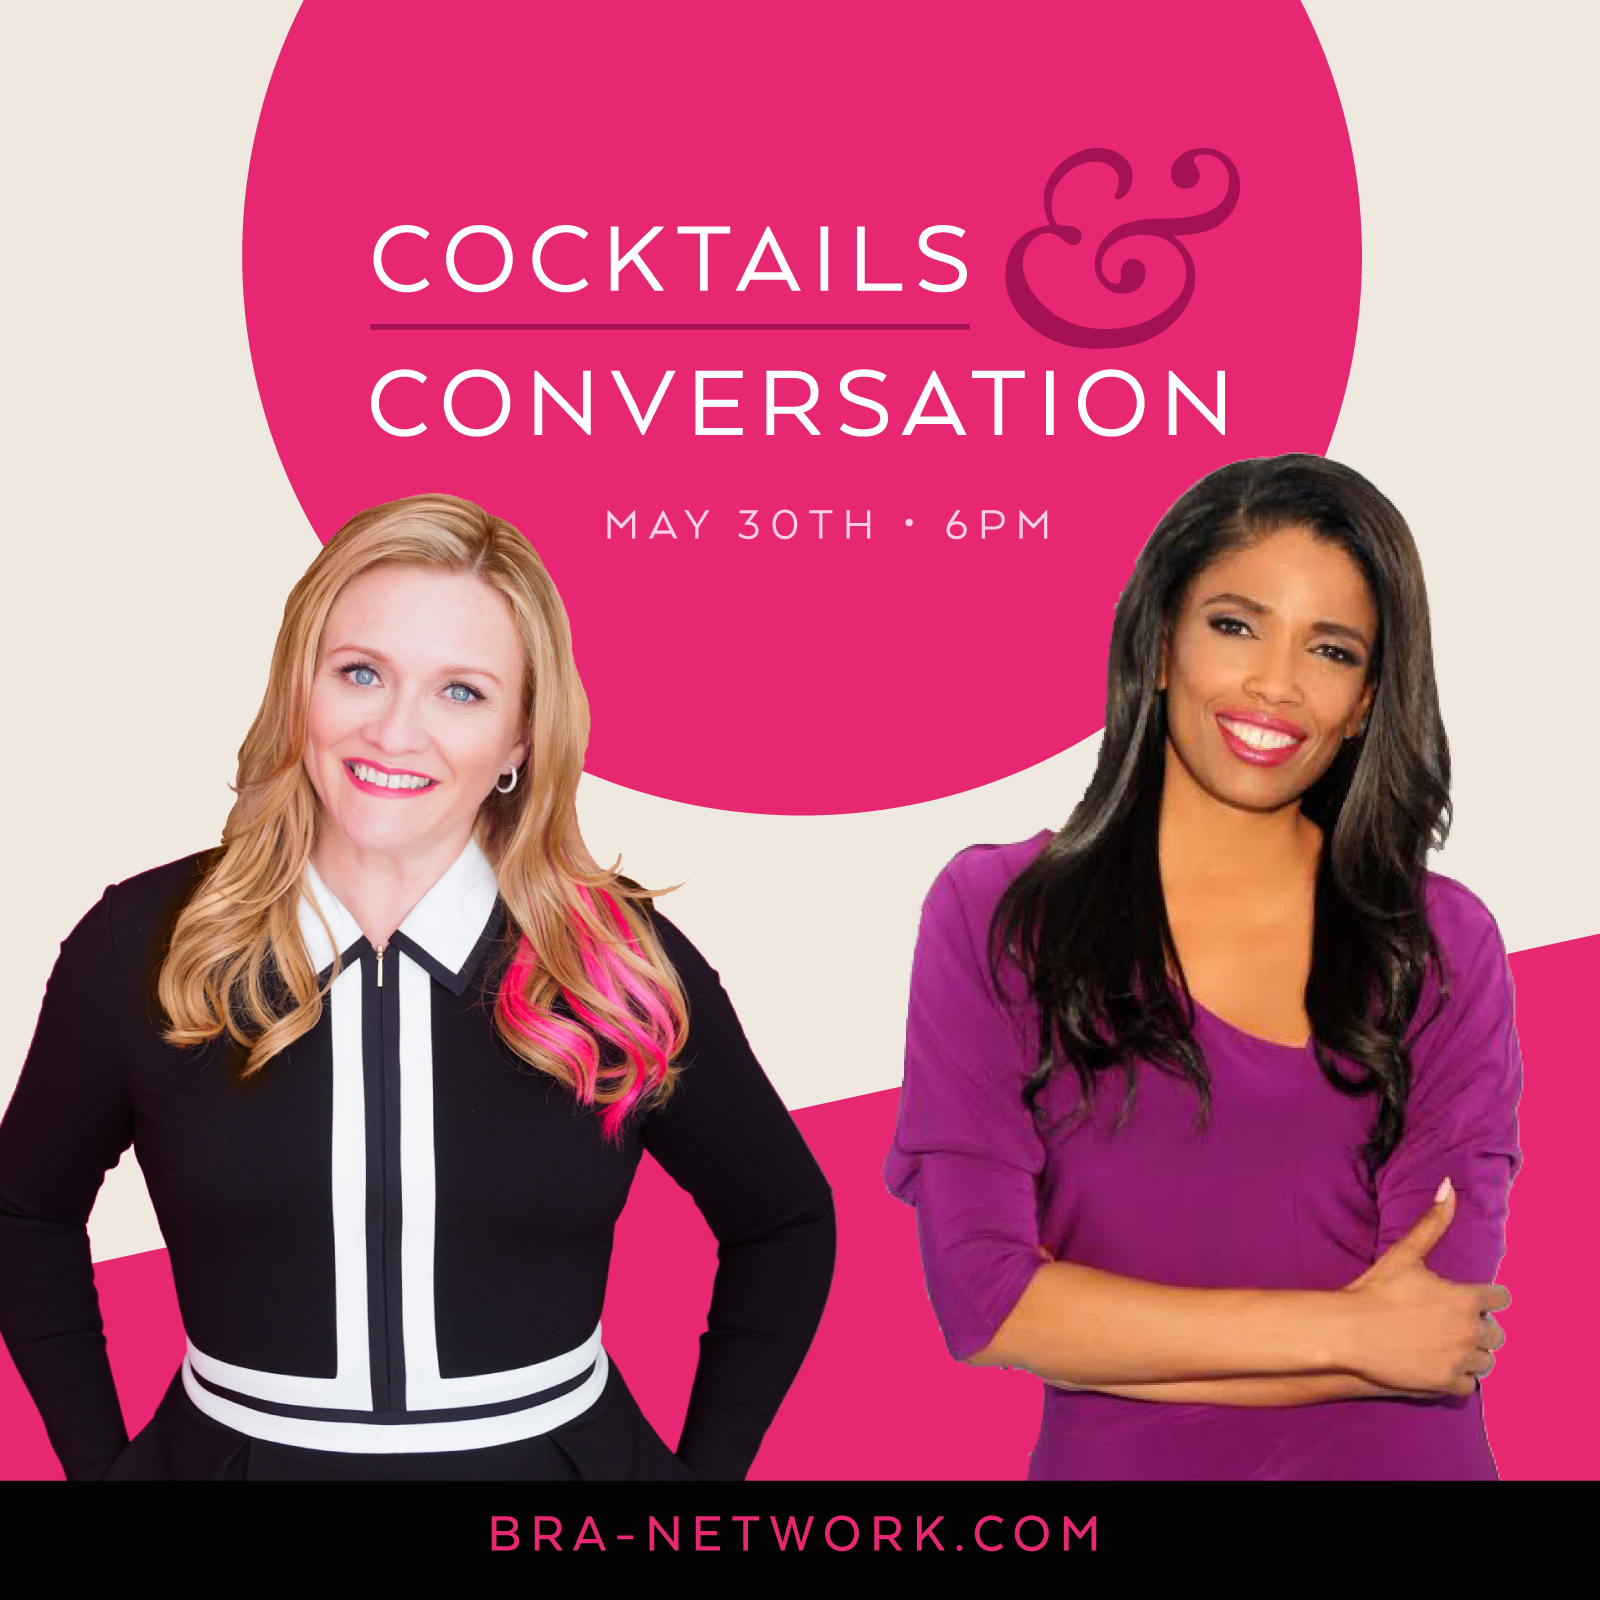 Cocktails and Conversation event 2019